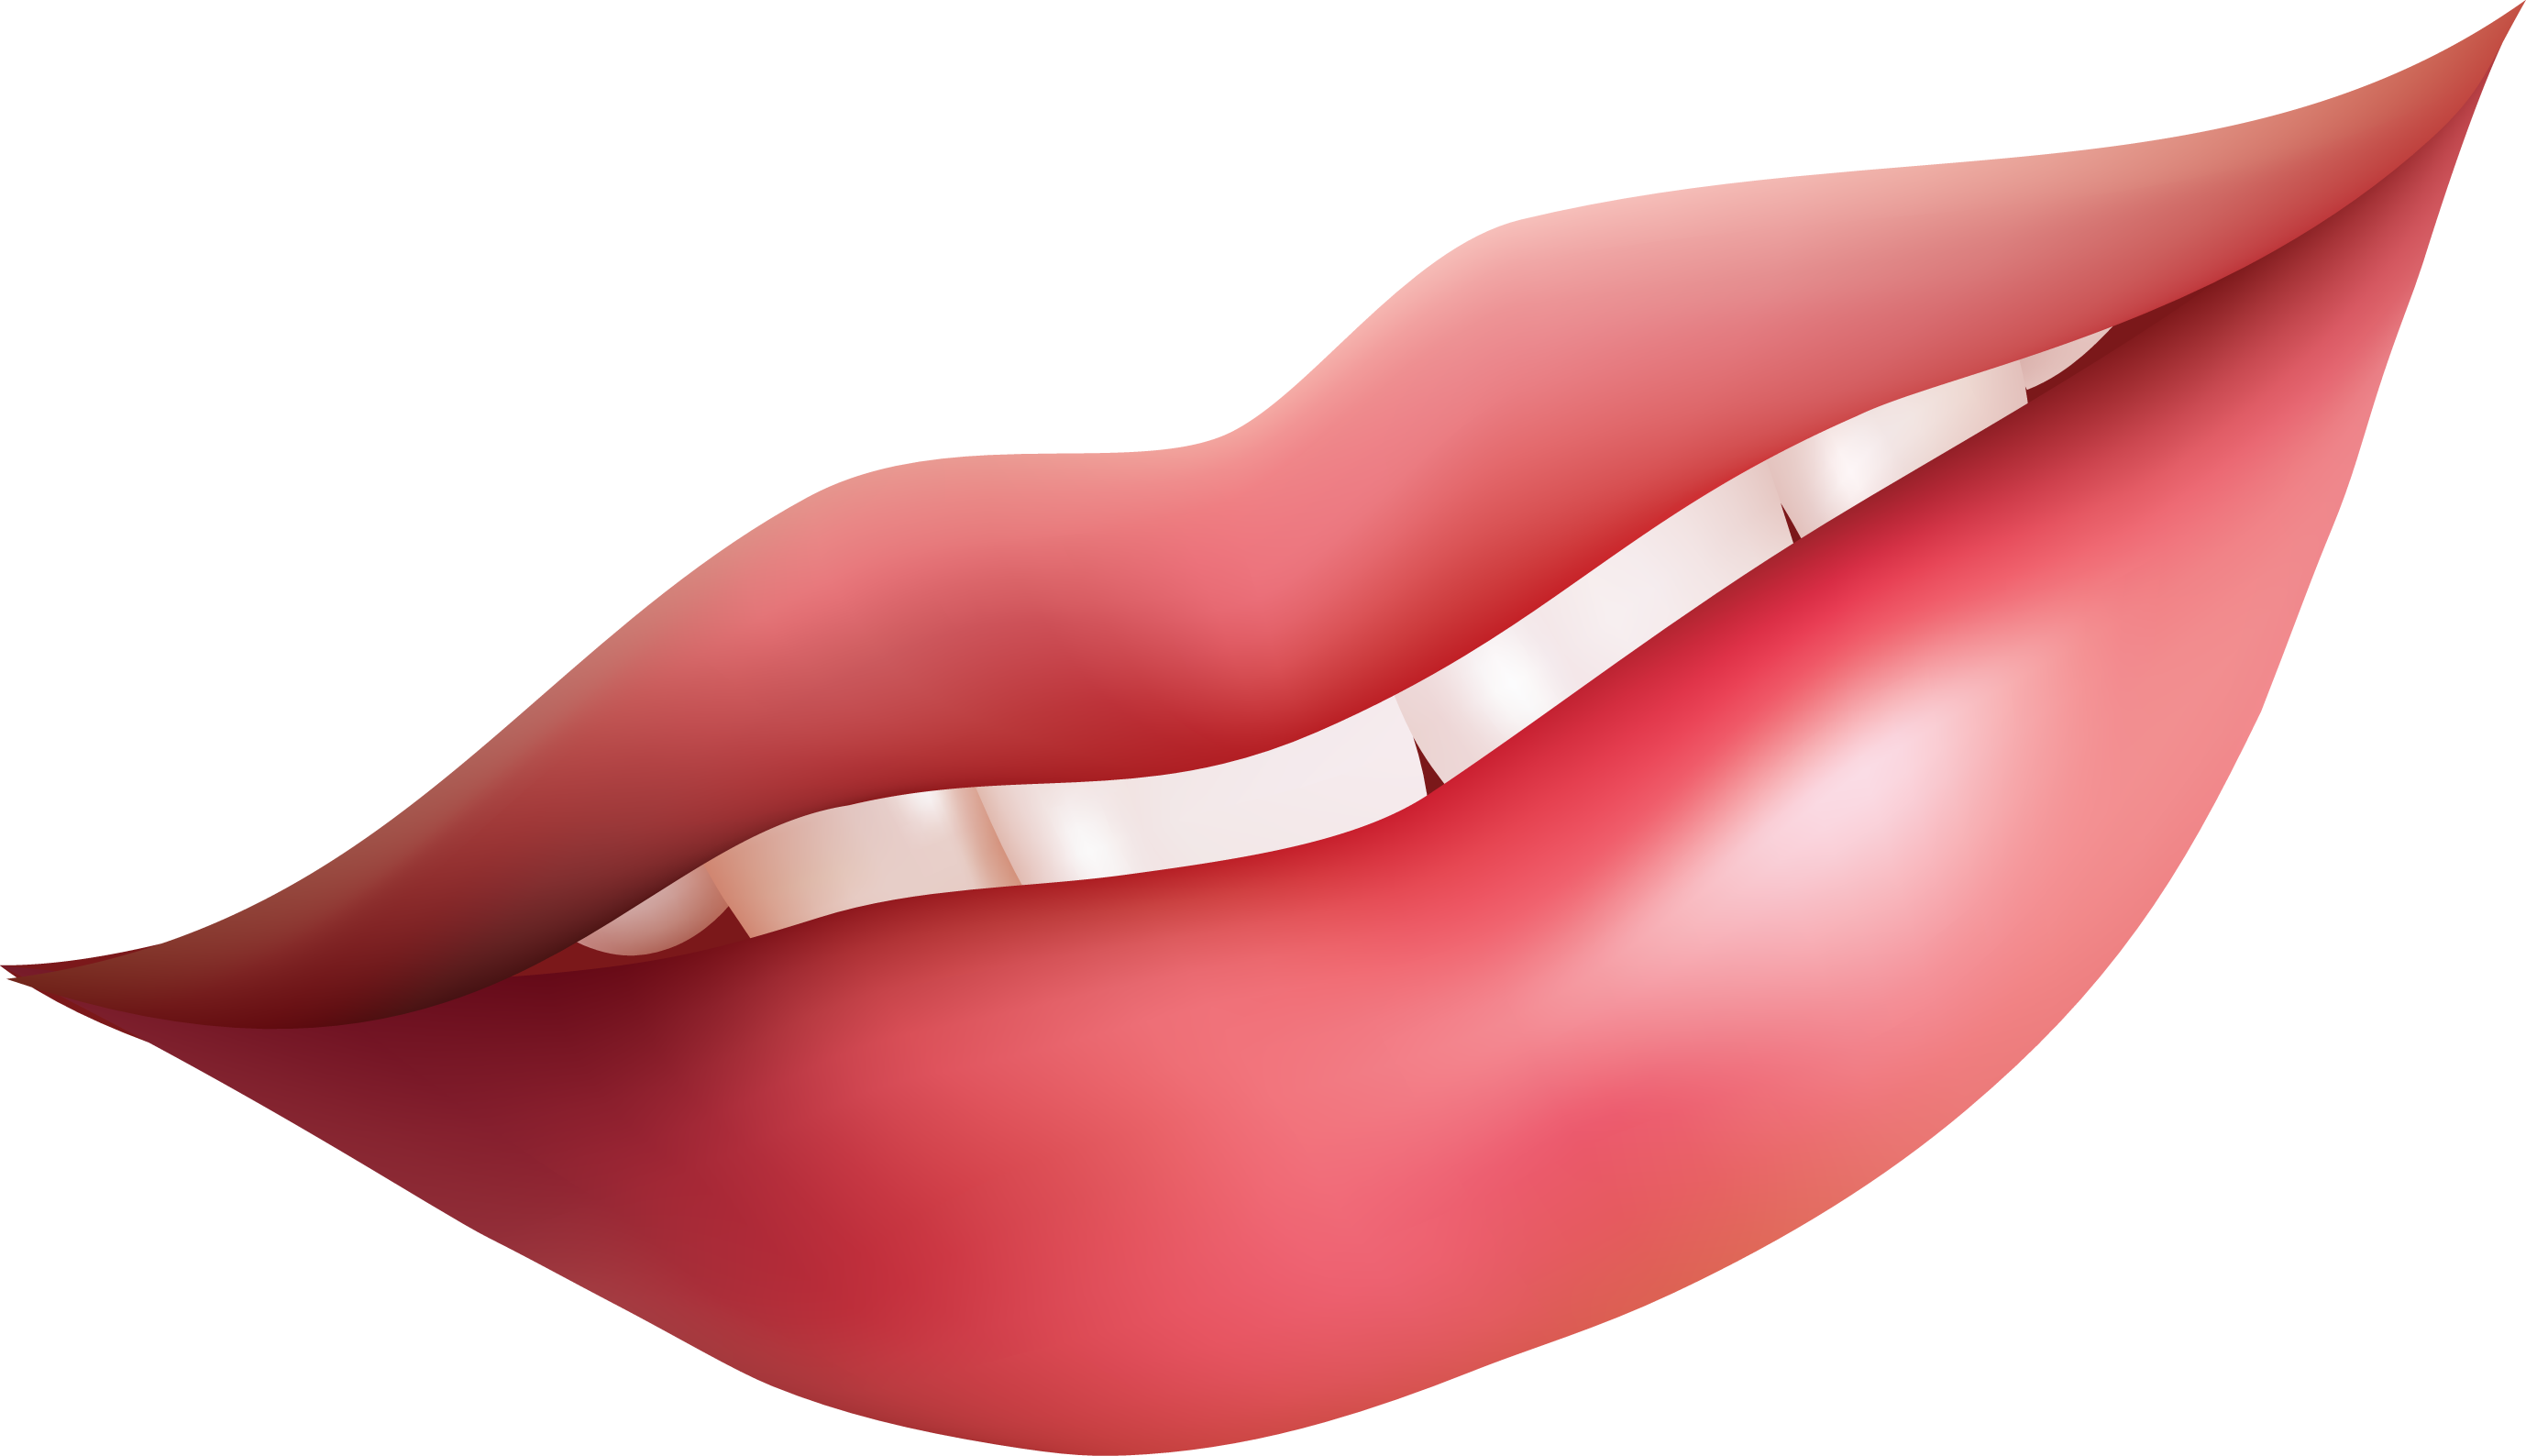 Mouth Talking PNG HD - 125519